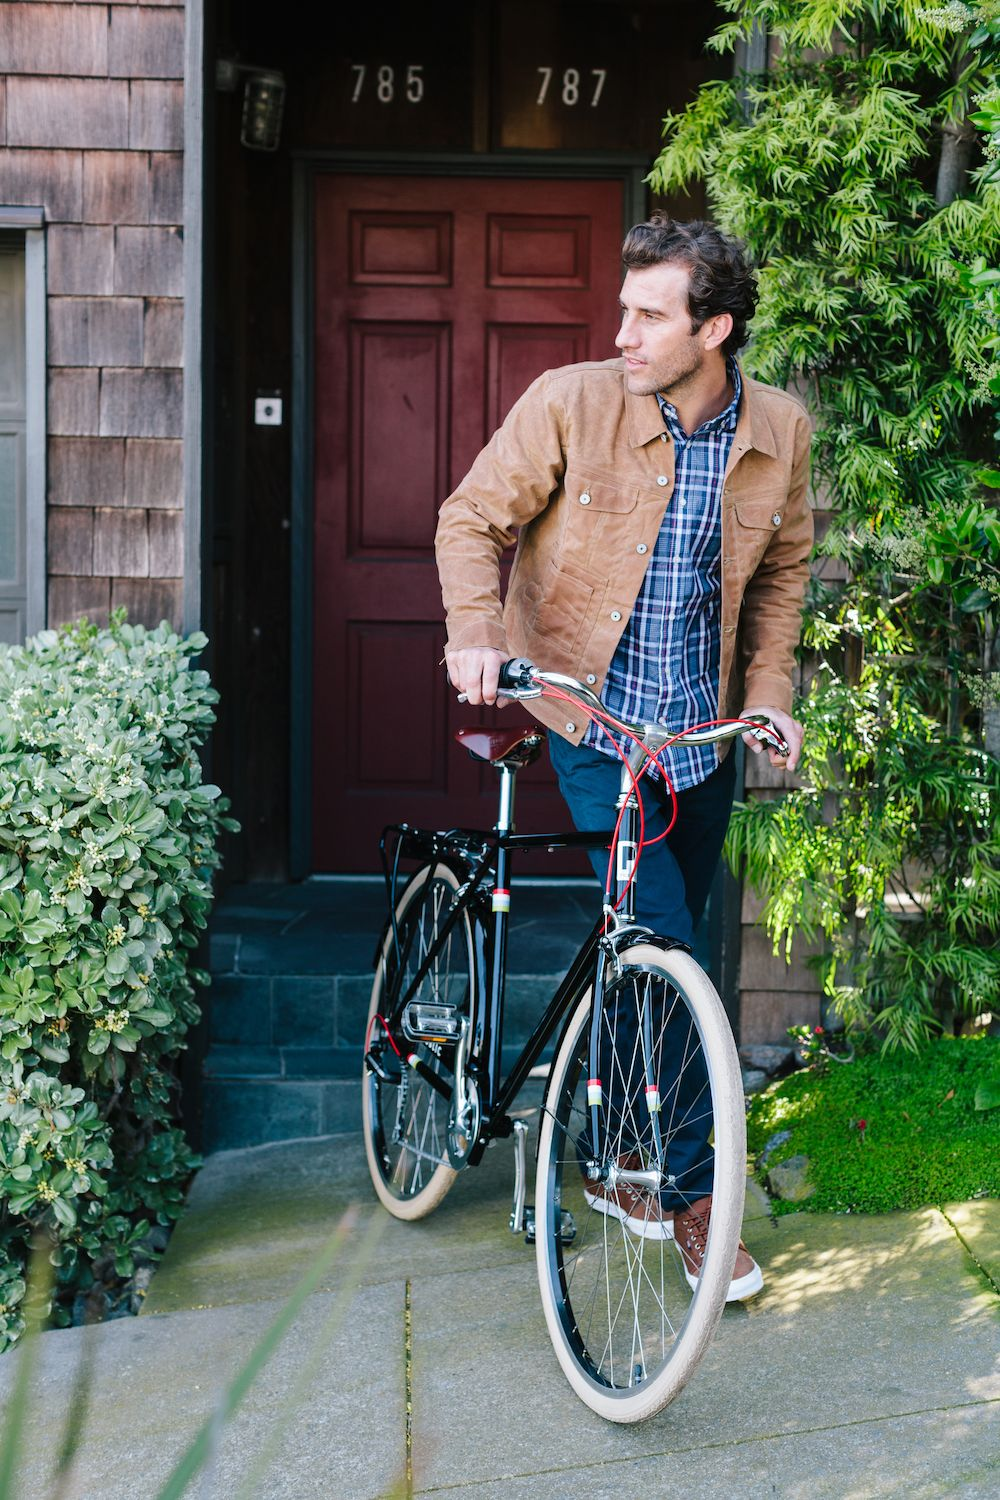 Heading Out With The Steel Commuter Bike The Public V7 City